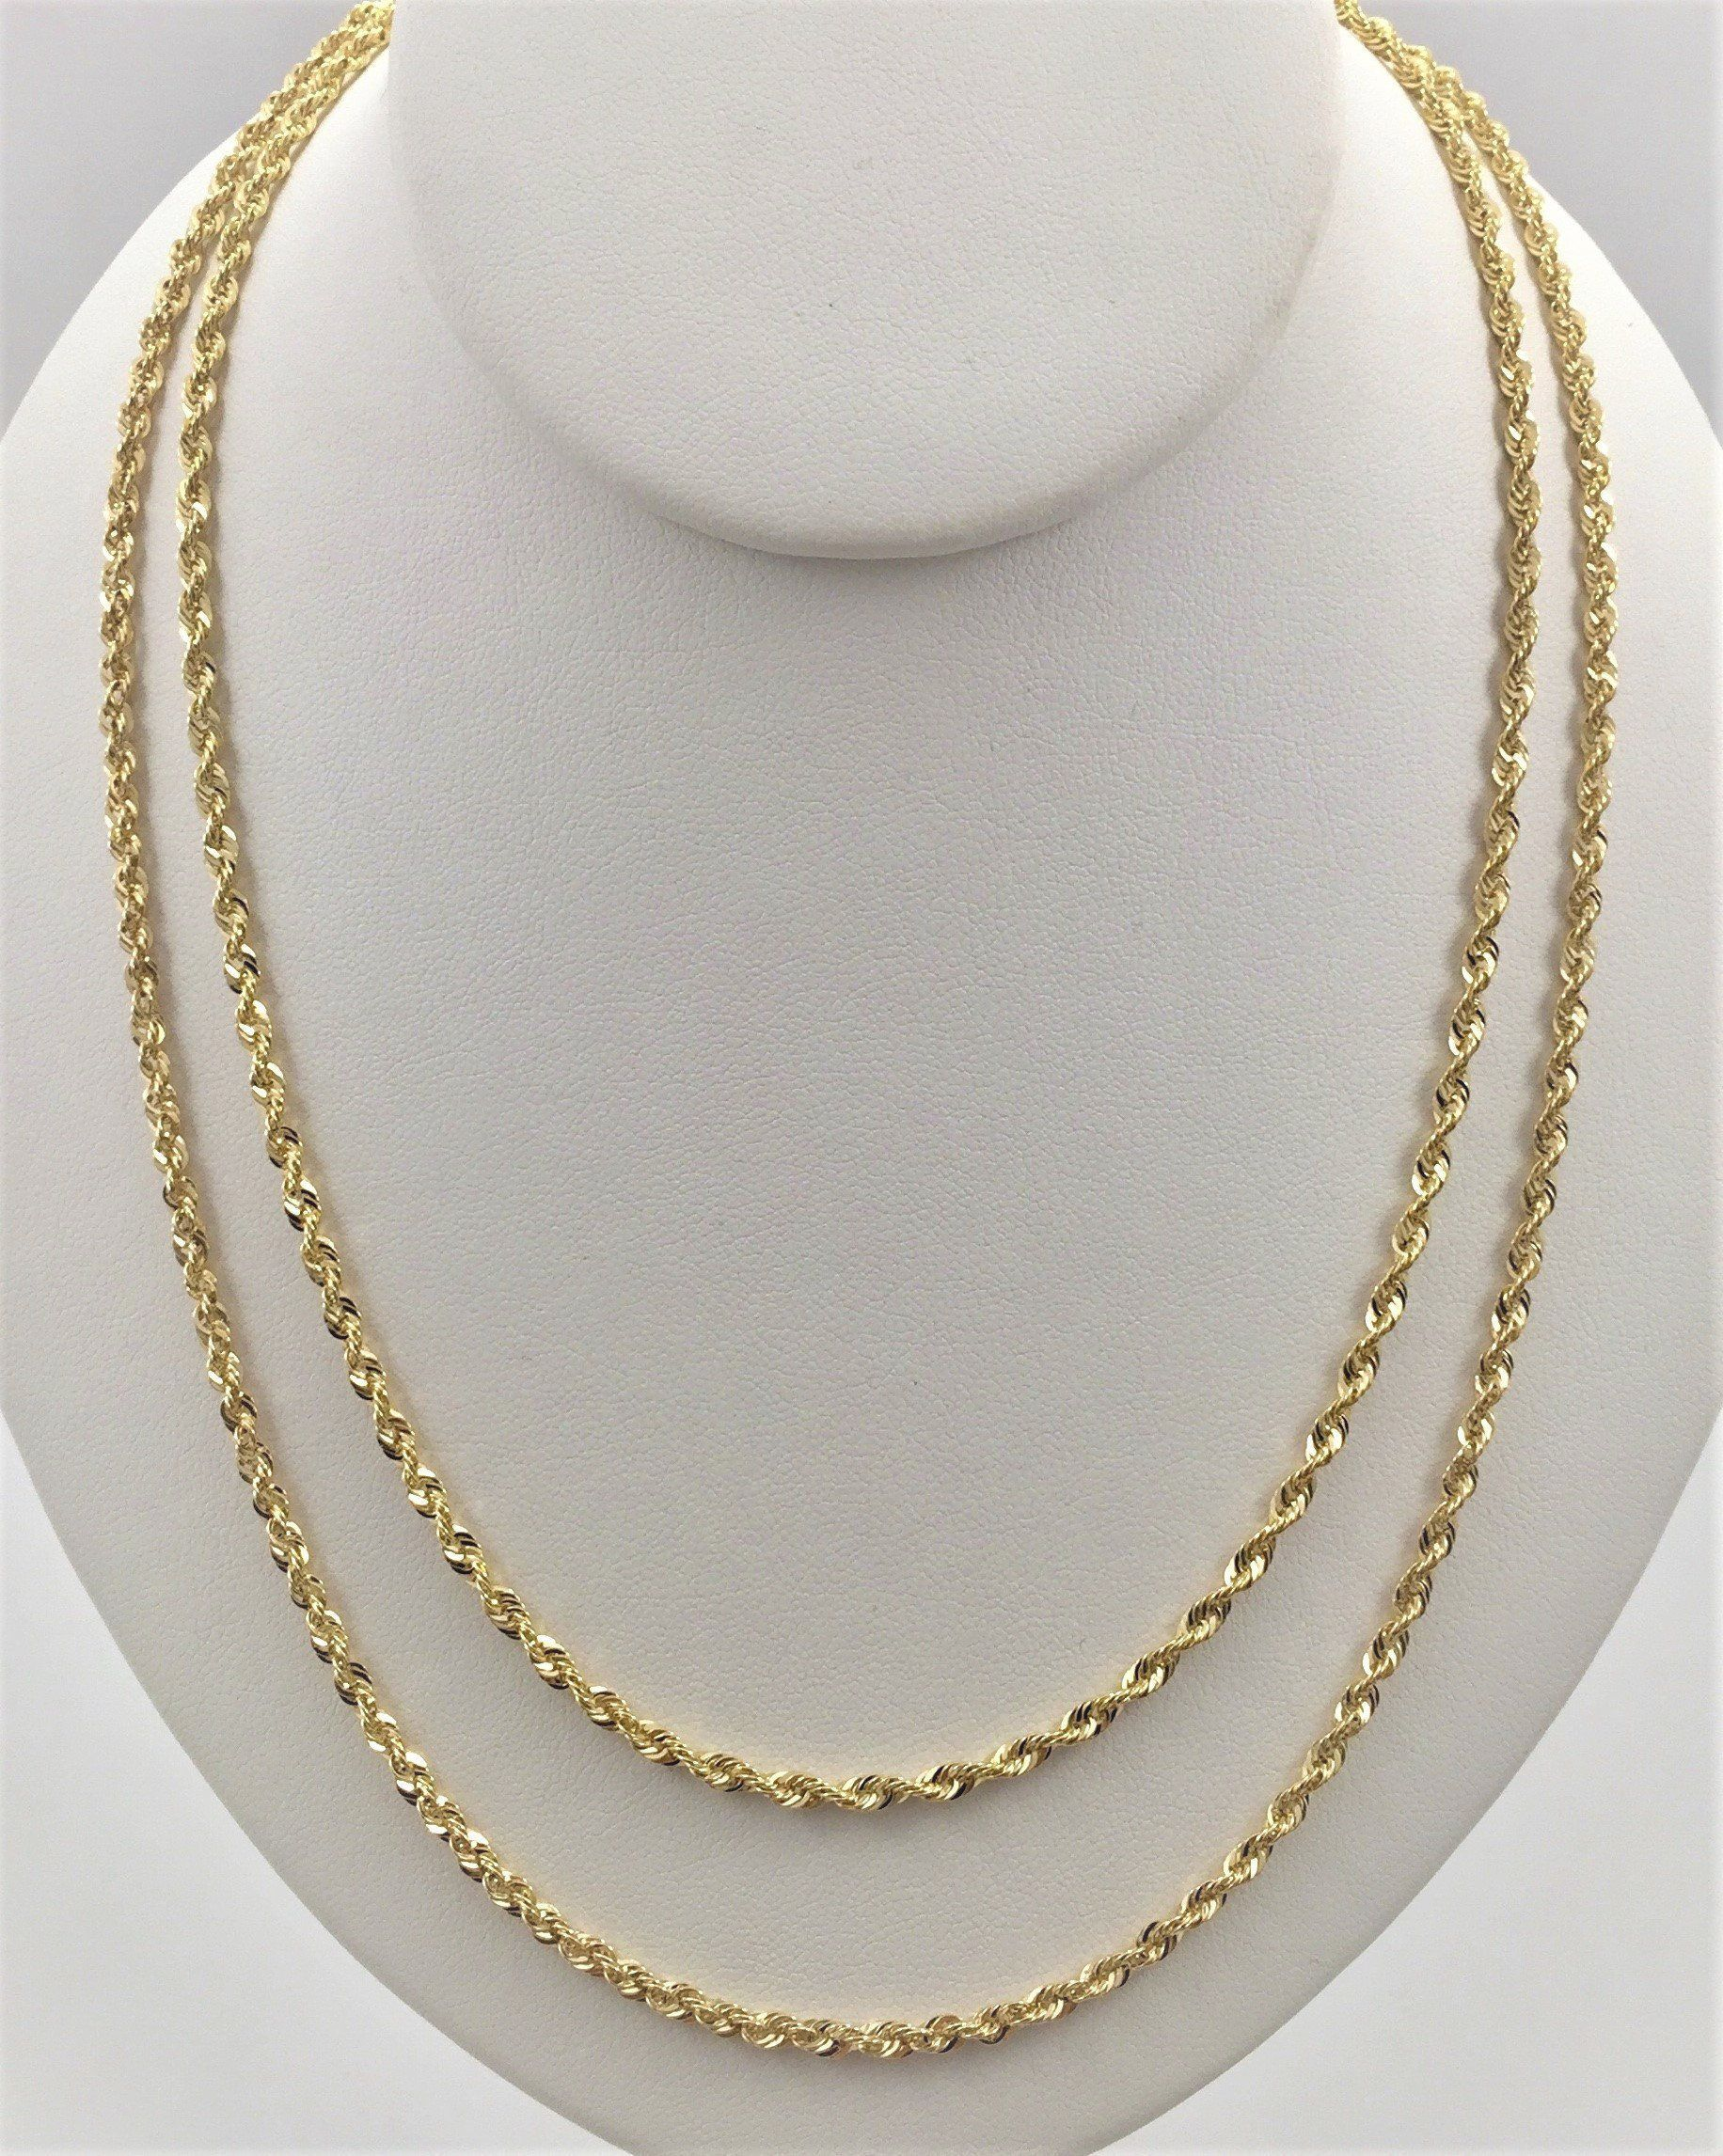 100 Real 10k Gold Rope Chain 5mm 4mm 3mm Real Gold Necklace Chains Gold Neck Chain Real Gold Necklace